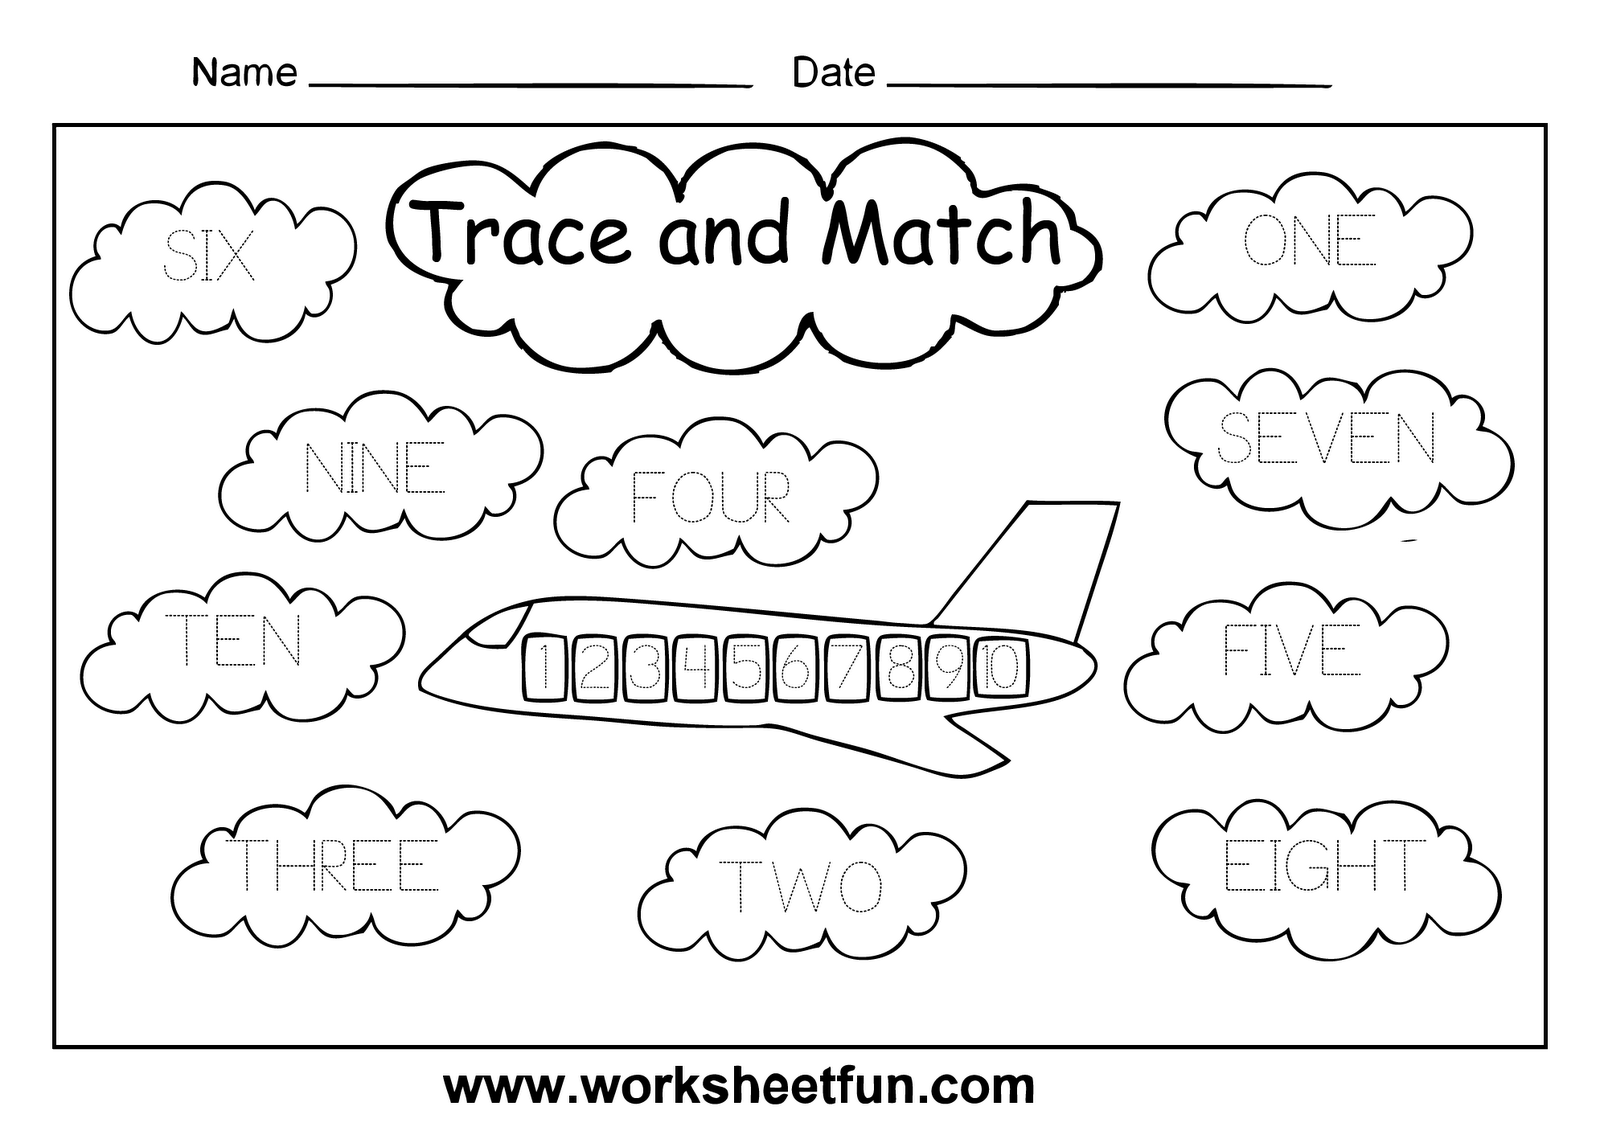 Proatmealus  Inspiring Worksheet Numbers    Reocurent With Hot Speech Therapy Worksheets For Adults Besides Types Of Numbers Worksheet Furthermore Everyday Math Th Grade Worksheets With Adorable Halloween Math Worksheet Also Great Wall Of China Worksheet In Addition Worksheet  Special  Triangles And Two Step Word Problems Rd Grade Worksheets As Well As Weather Vocabulary Worksheets Additionally Ed Word Family Worksheets From Reocurentcom With Proatmealus  Hot Worksheet Numbers    Reocurent With Adorable Speech Therapy Worksheets For Adults Besides Types Of Numbers Worksheet Furthermore Everyday Math Th Grade Worksheets And Inspiring Halloween Math Worksheet Also Great Wall Of China Worksheet In Addition Worksheet  Special  Triangles From Reocurentcom